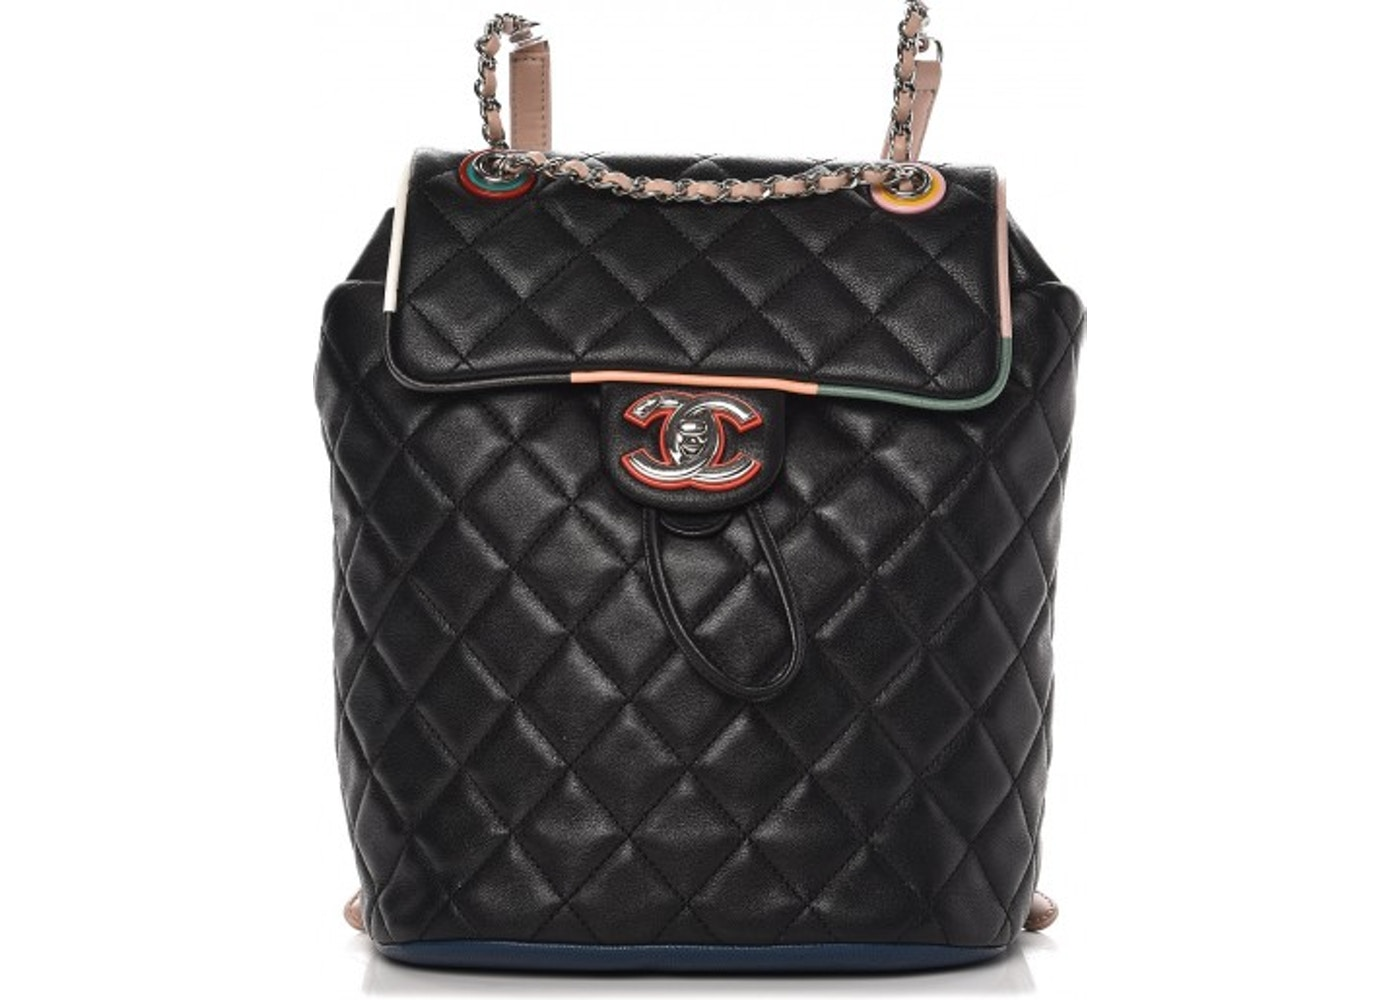 248f378cc937 Chanel Cuba Urban Spirit Backpack Quilted Diamond Multicolor Small  Black Orange Pink. Quilted Diamond Multicolor Small Black Orange Pink